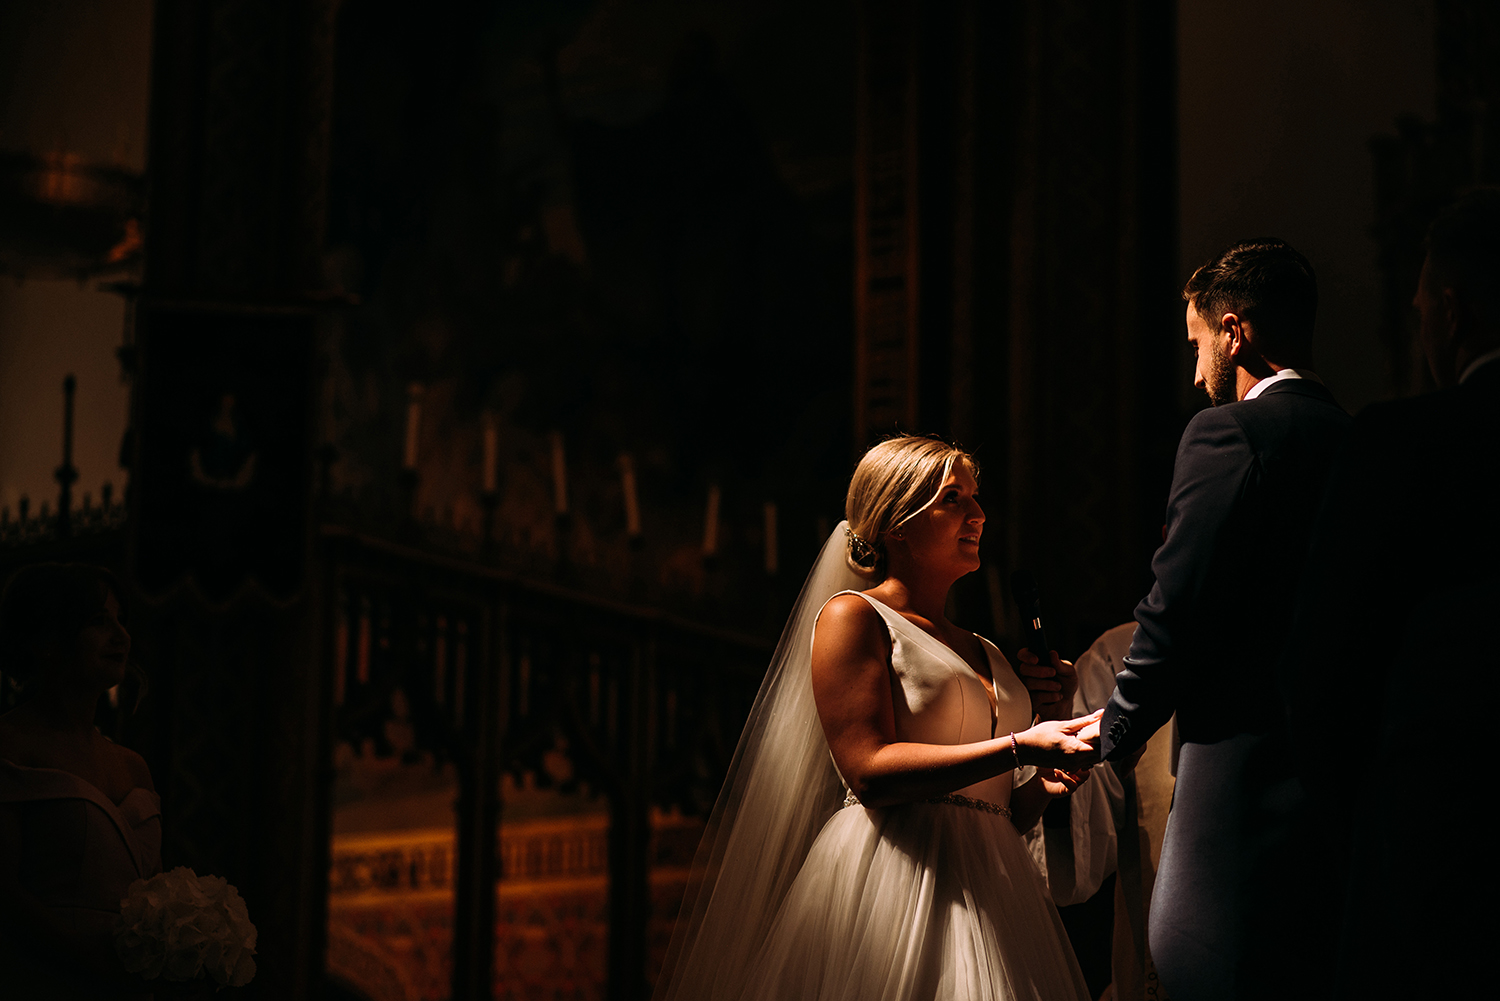 bride and groom in amazing light at church